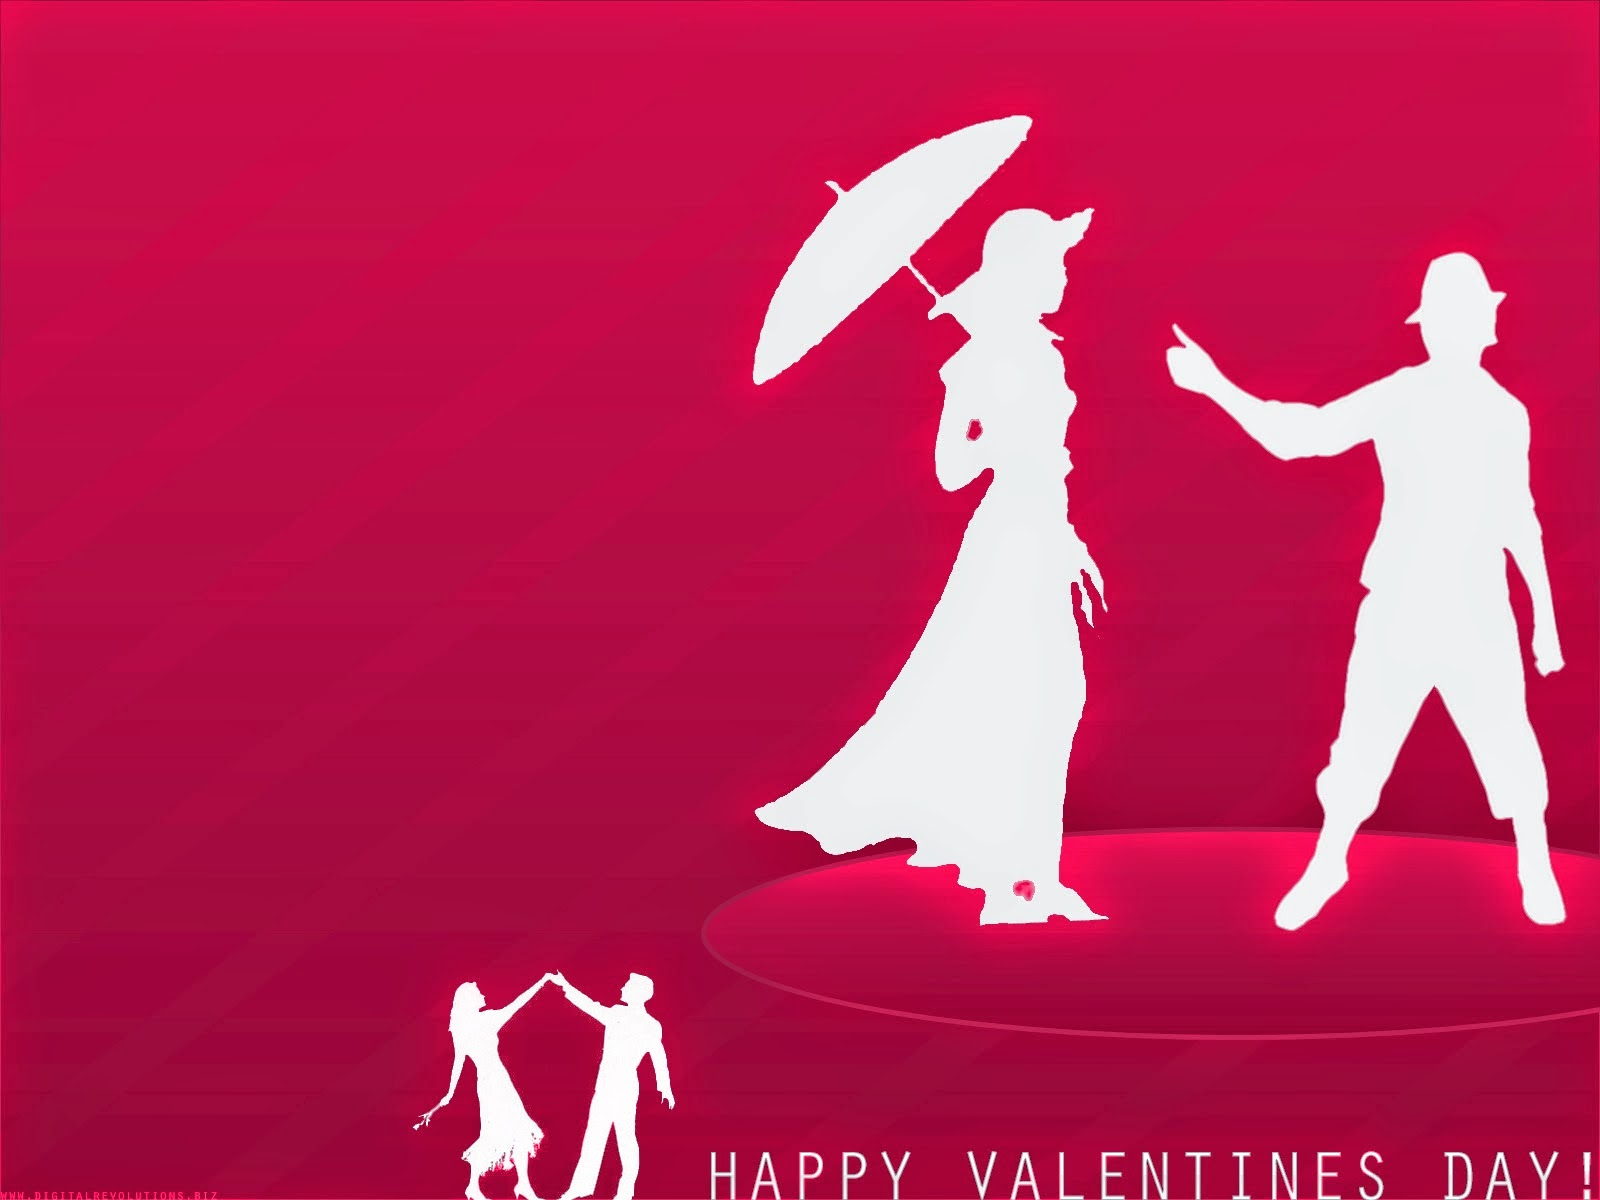 romantic valentines day hd images for jaanu free download | happy